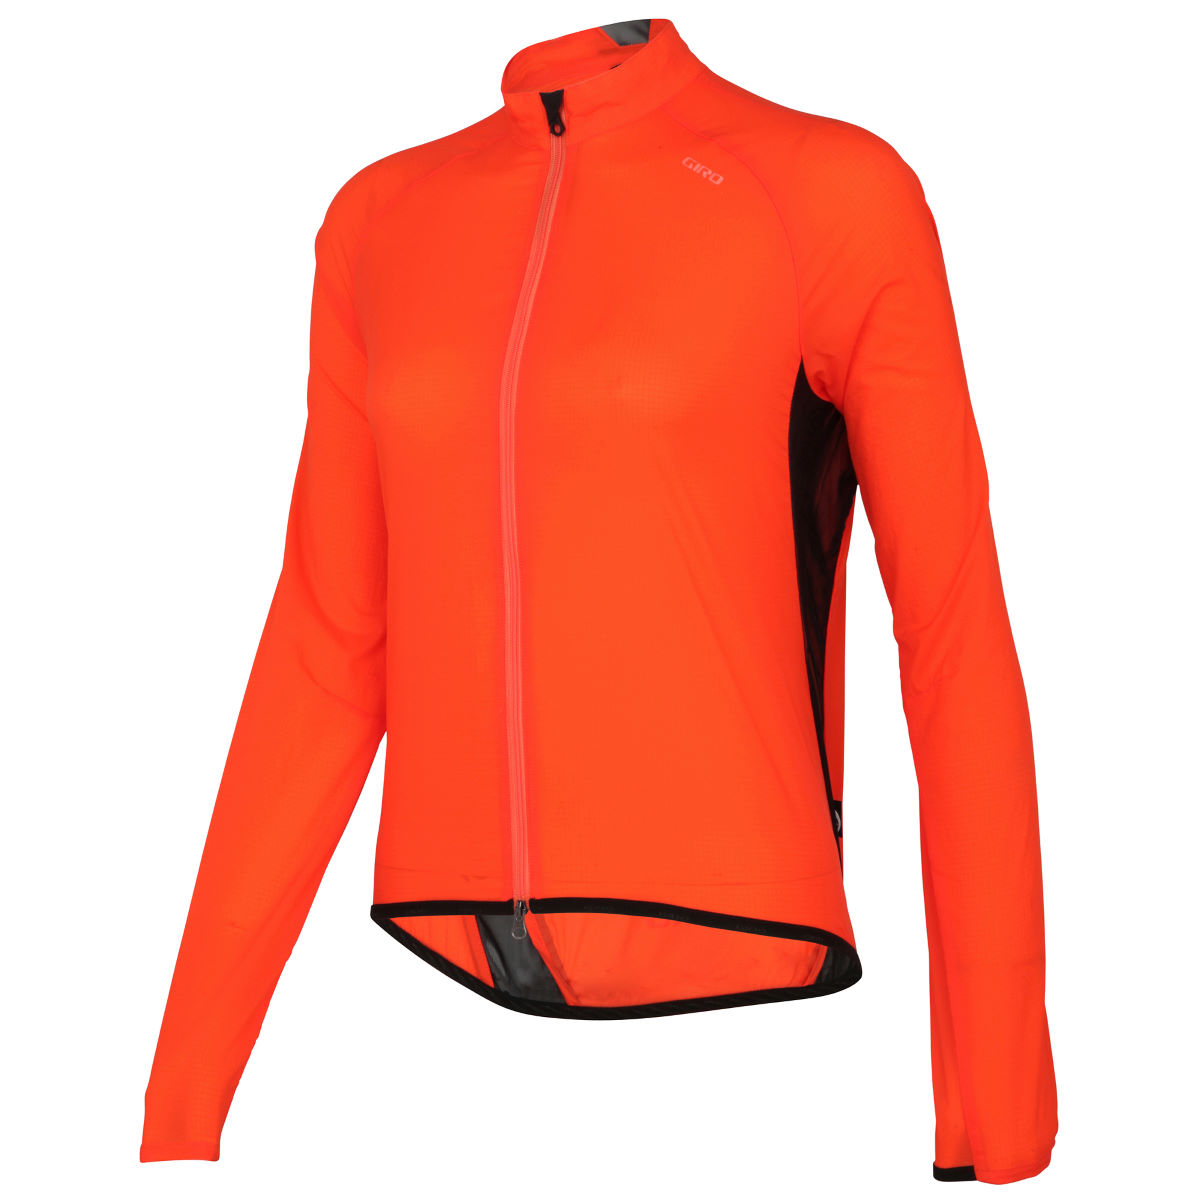 Veste Femme Giro Chrono Wind - M Orange Coupe-vents vélo